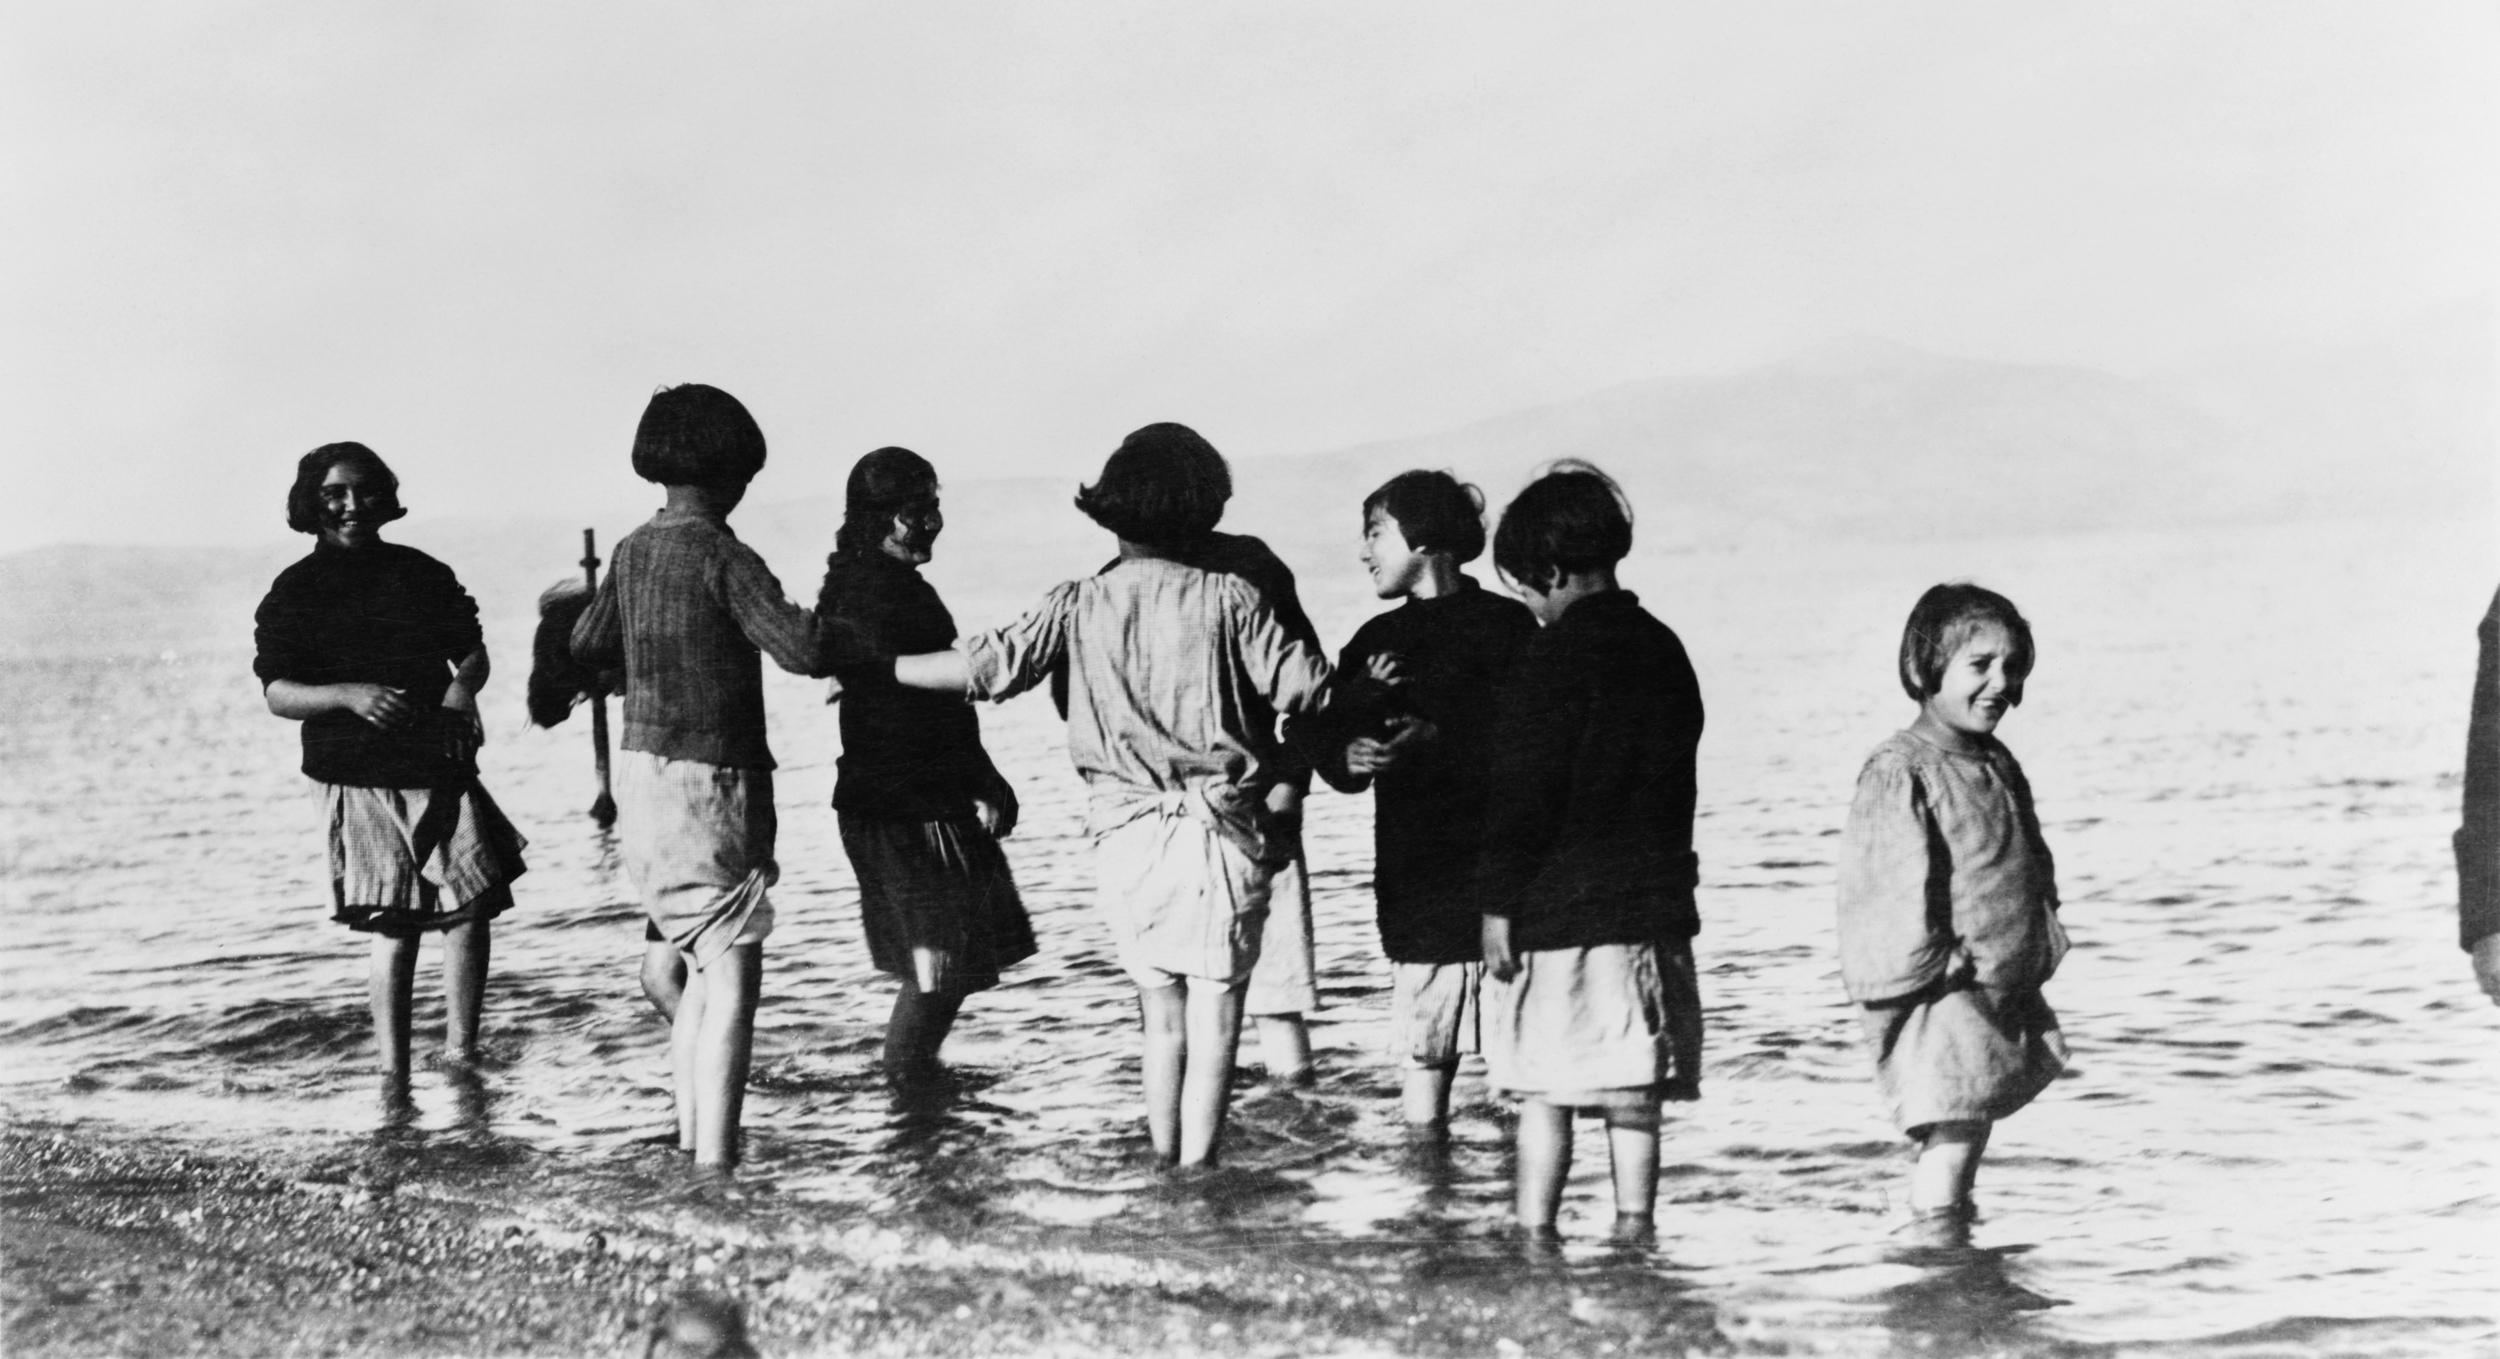 Greek and Armenian refugee children in the sea near Marathon, Greece after their departure from Turkey. The children -- all orphans -- had never seen the sea before. Photo licensed through Wikimedia Commons.